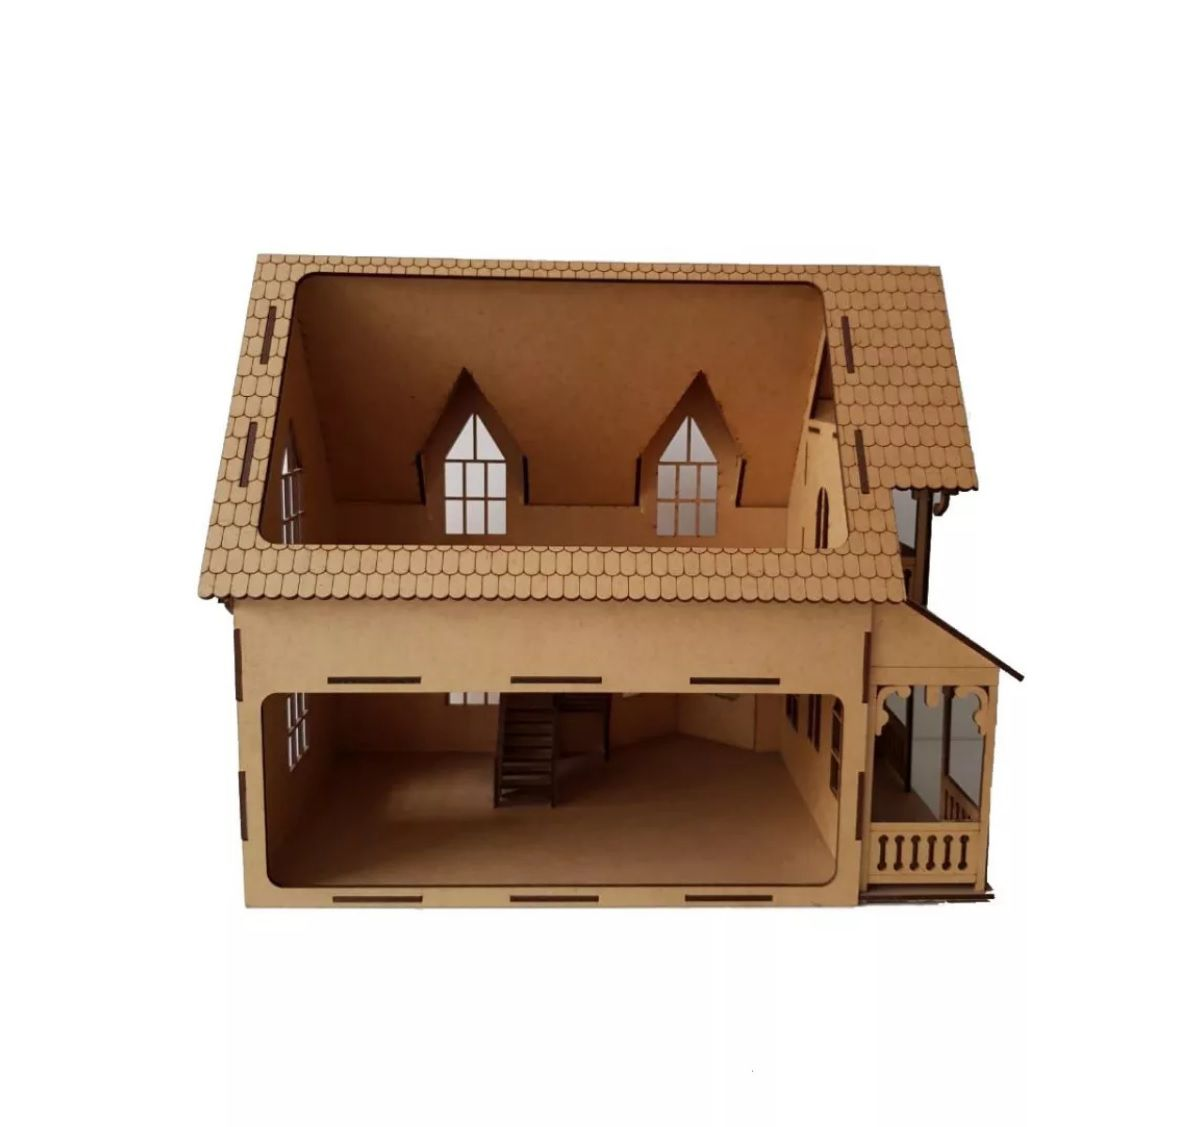 Casa Bonecas Modelo C11 para Polly, Barbie Pocket  e Similares